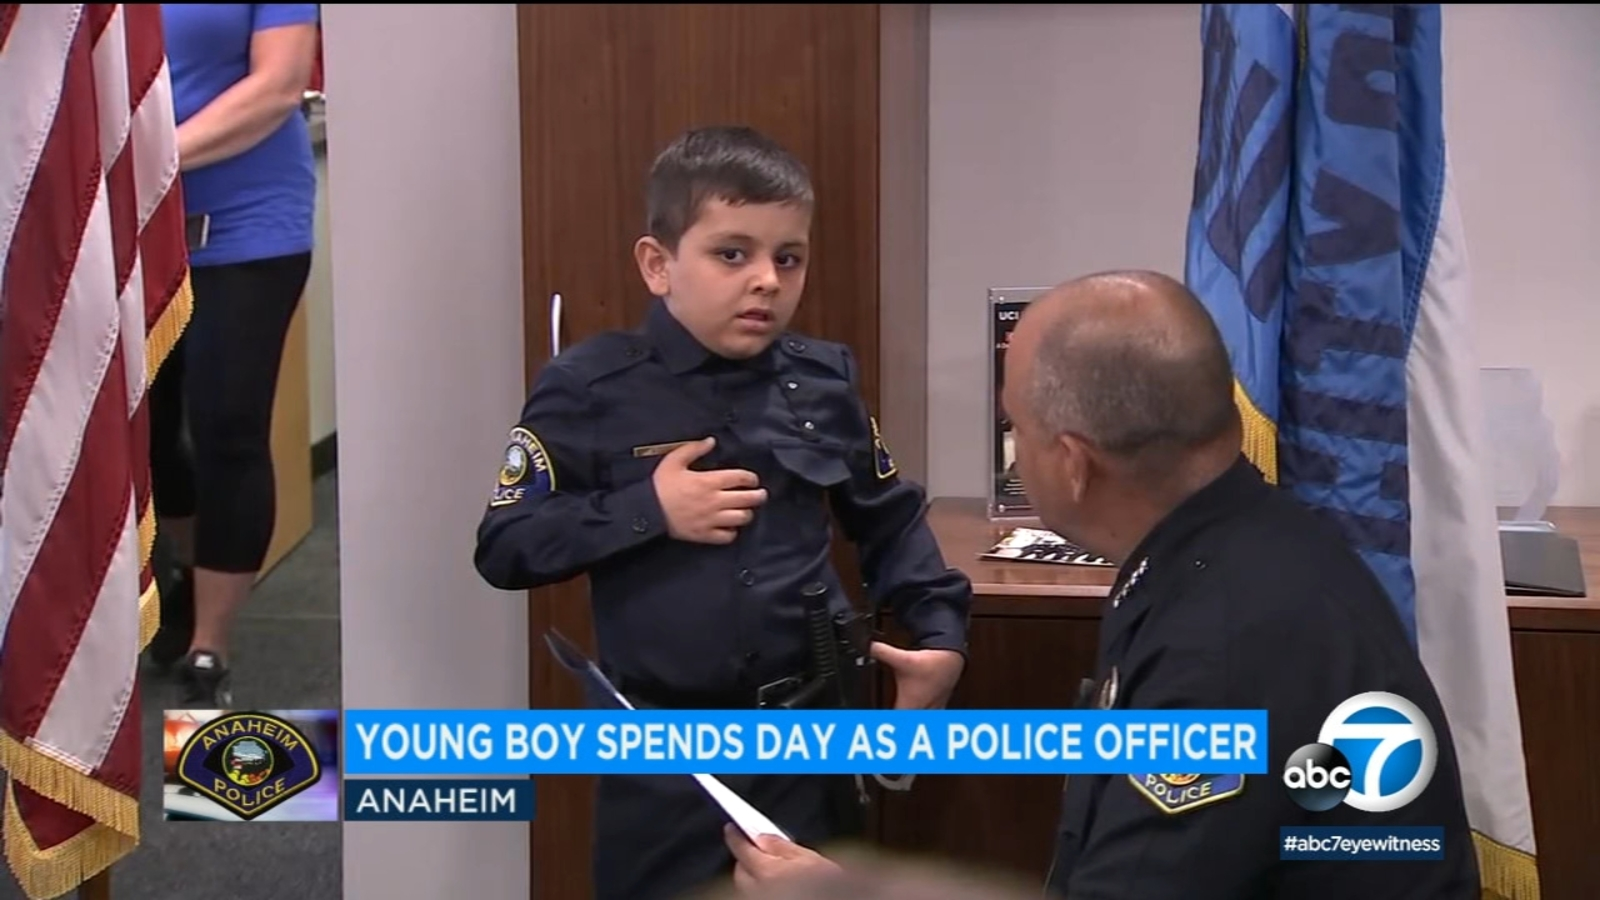 Anaheim boy battling leukemia gets to be cop for a day thanks to Make-A-Wish